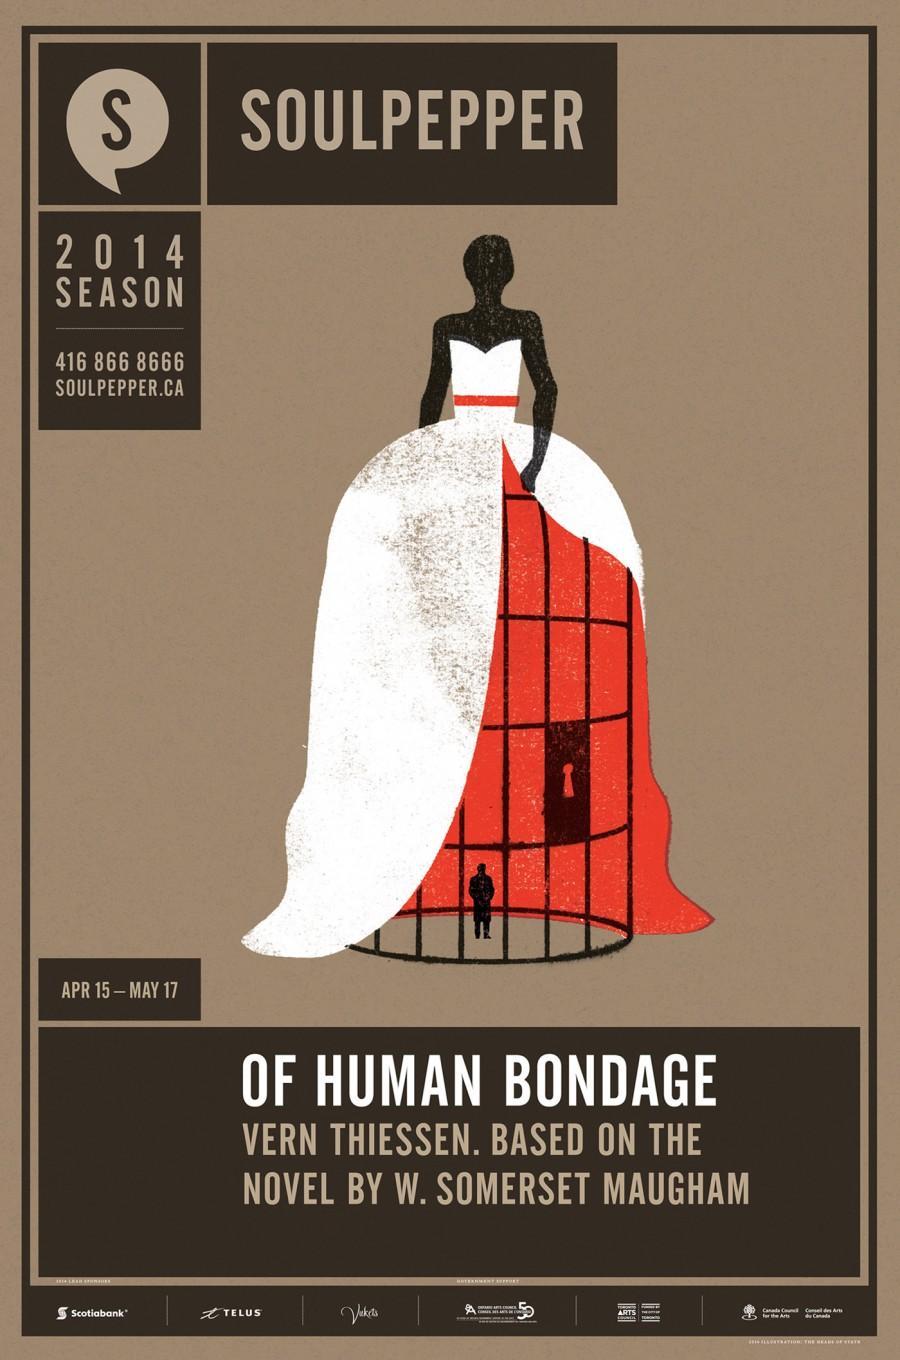 Of Human Bondage - Soulpepper Theatre - 2014 Season Poster Series - The Heads of State